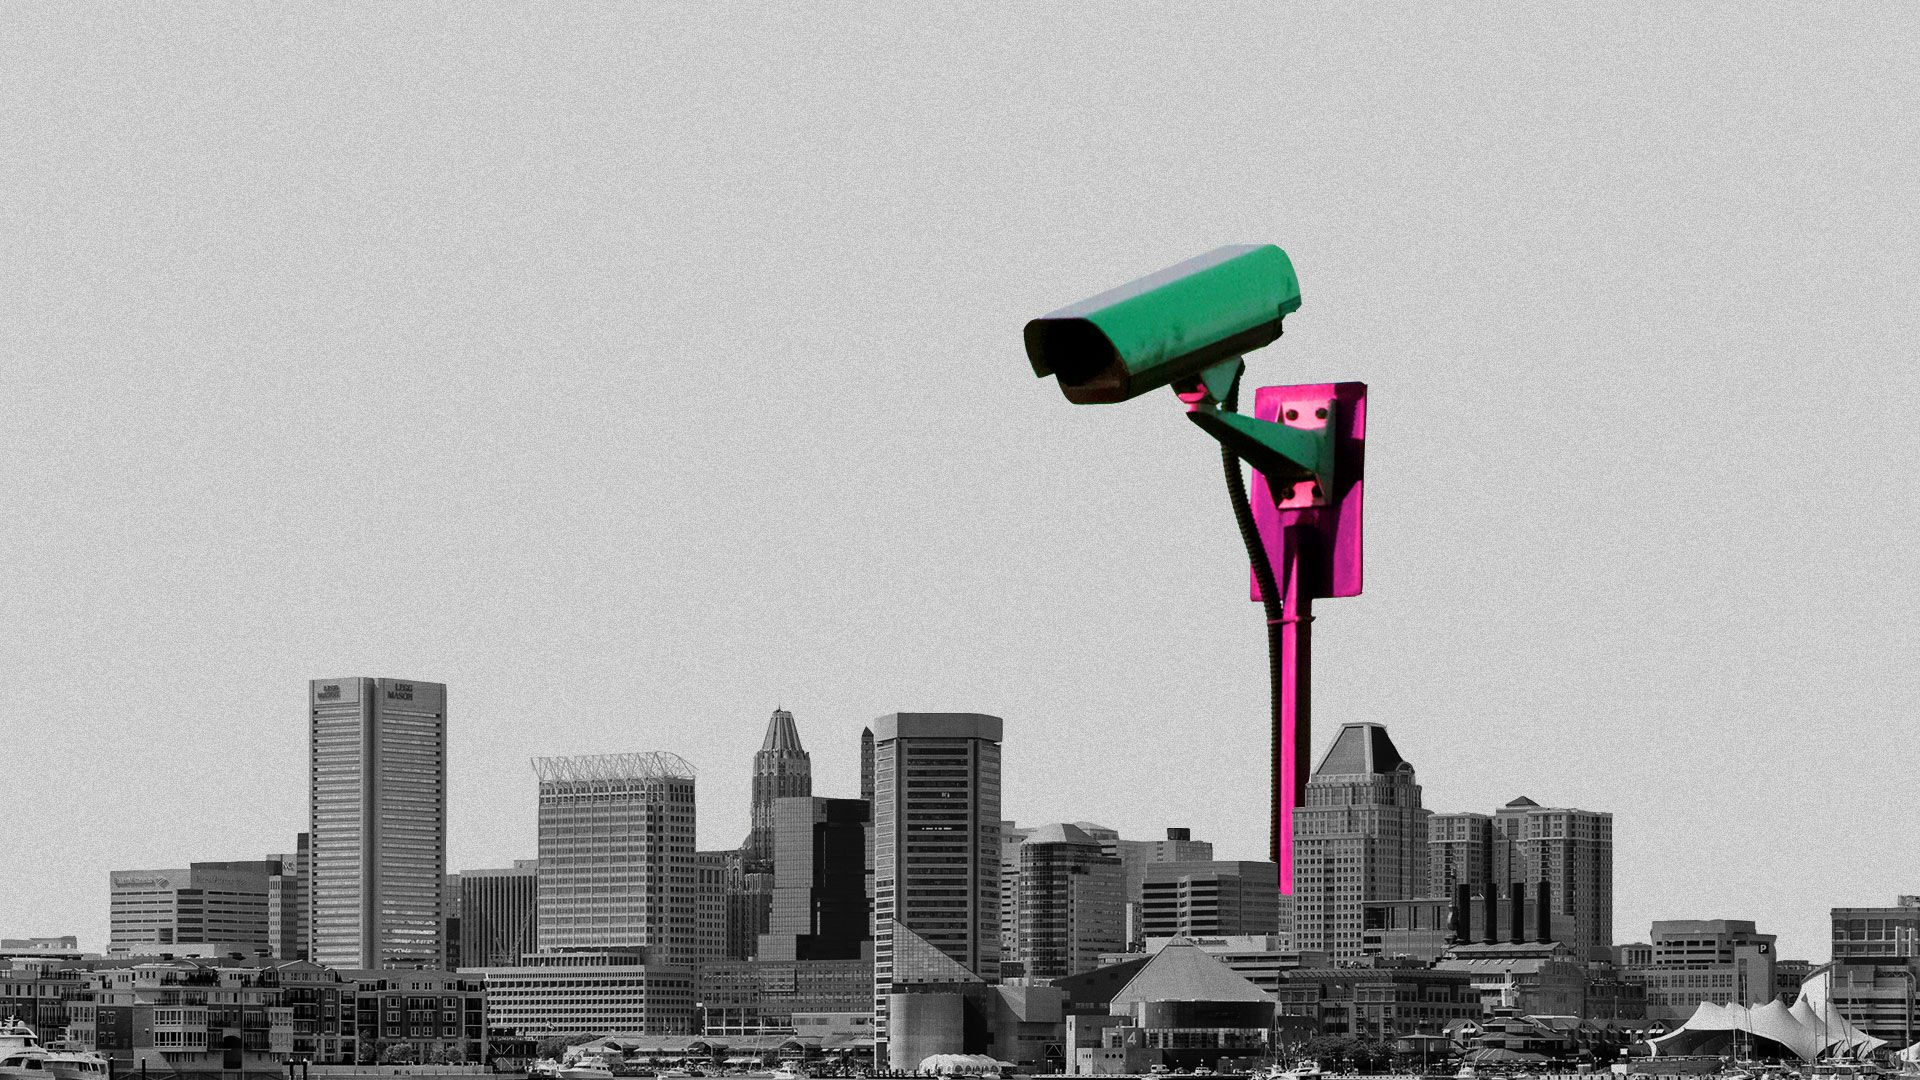 Illustration of the Baltimore city skyline with a massive CCTV camera overlooking the city from above.